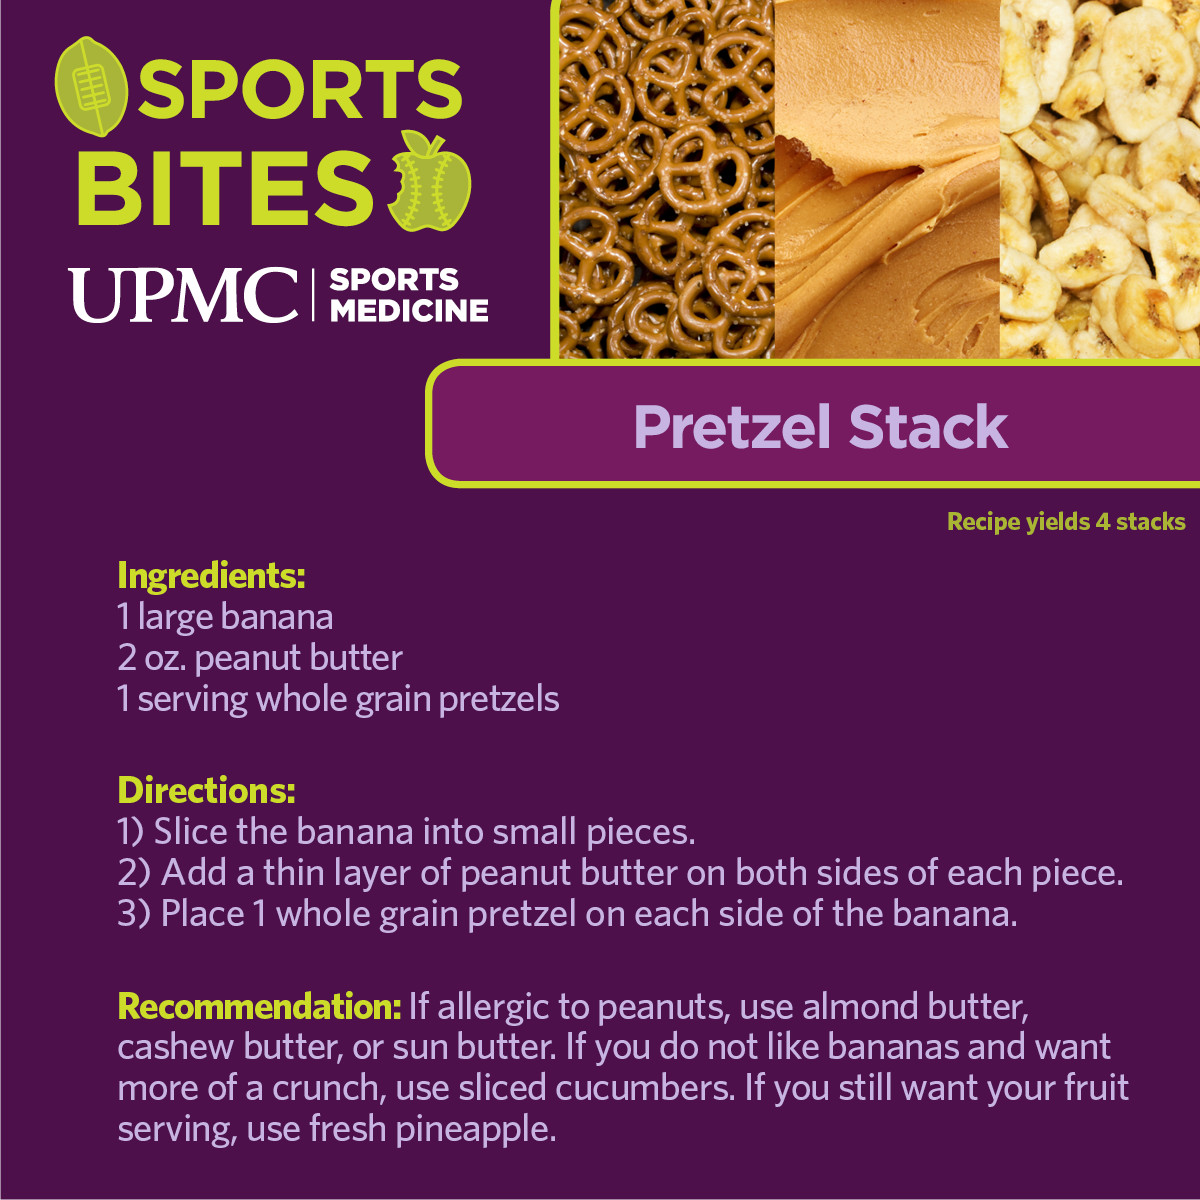 Learn how to make this healthy pretzel snack